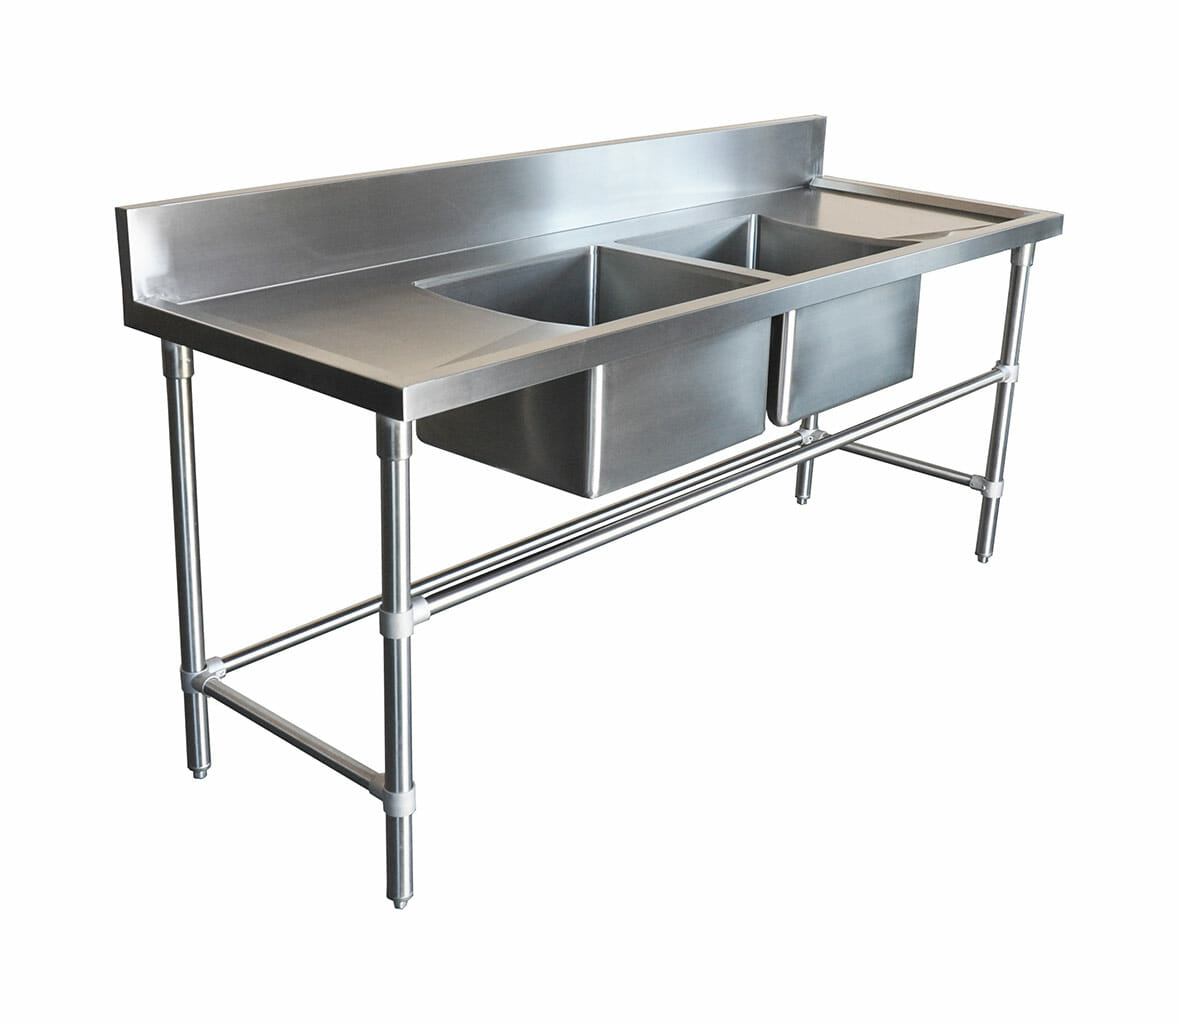 Double Stainless Steel Sink – Right And Left Bench, 2000 x 700 x 900mm high